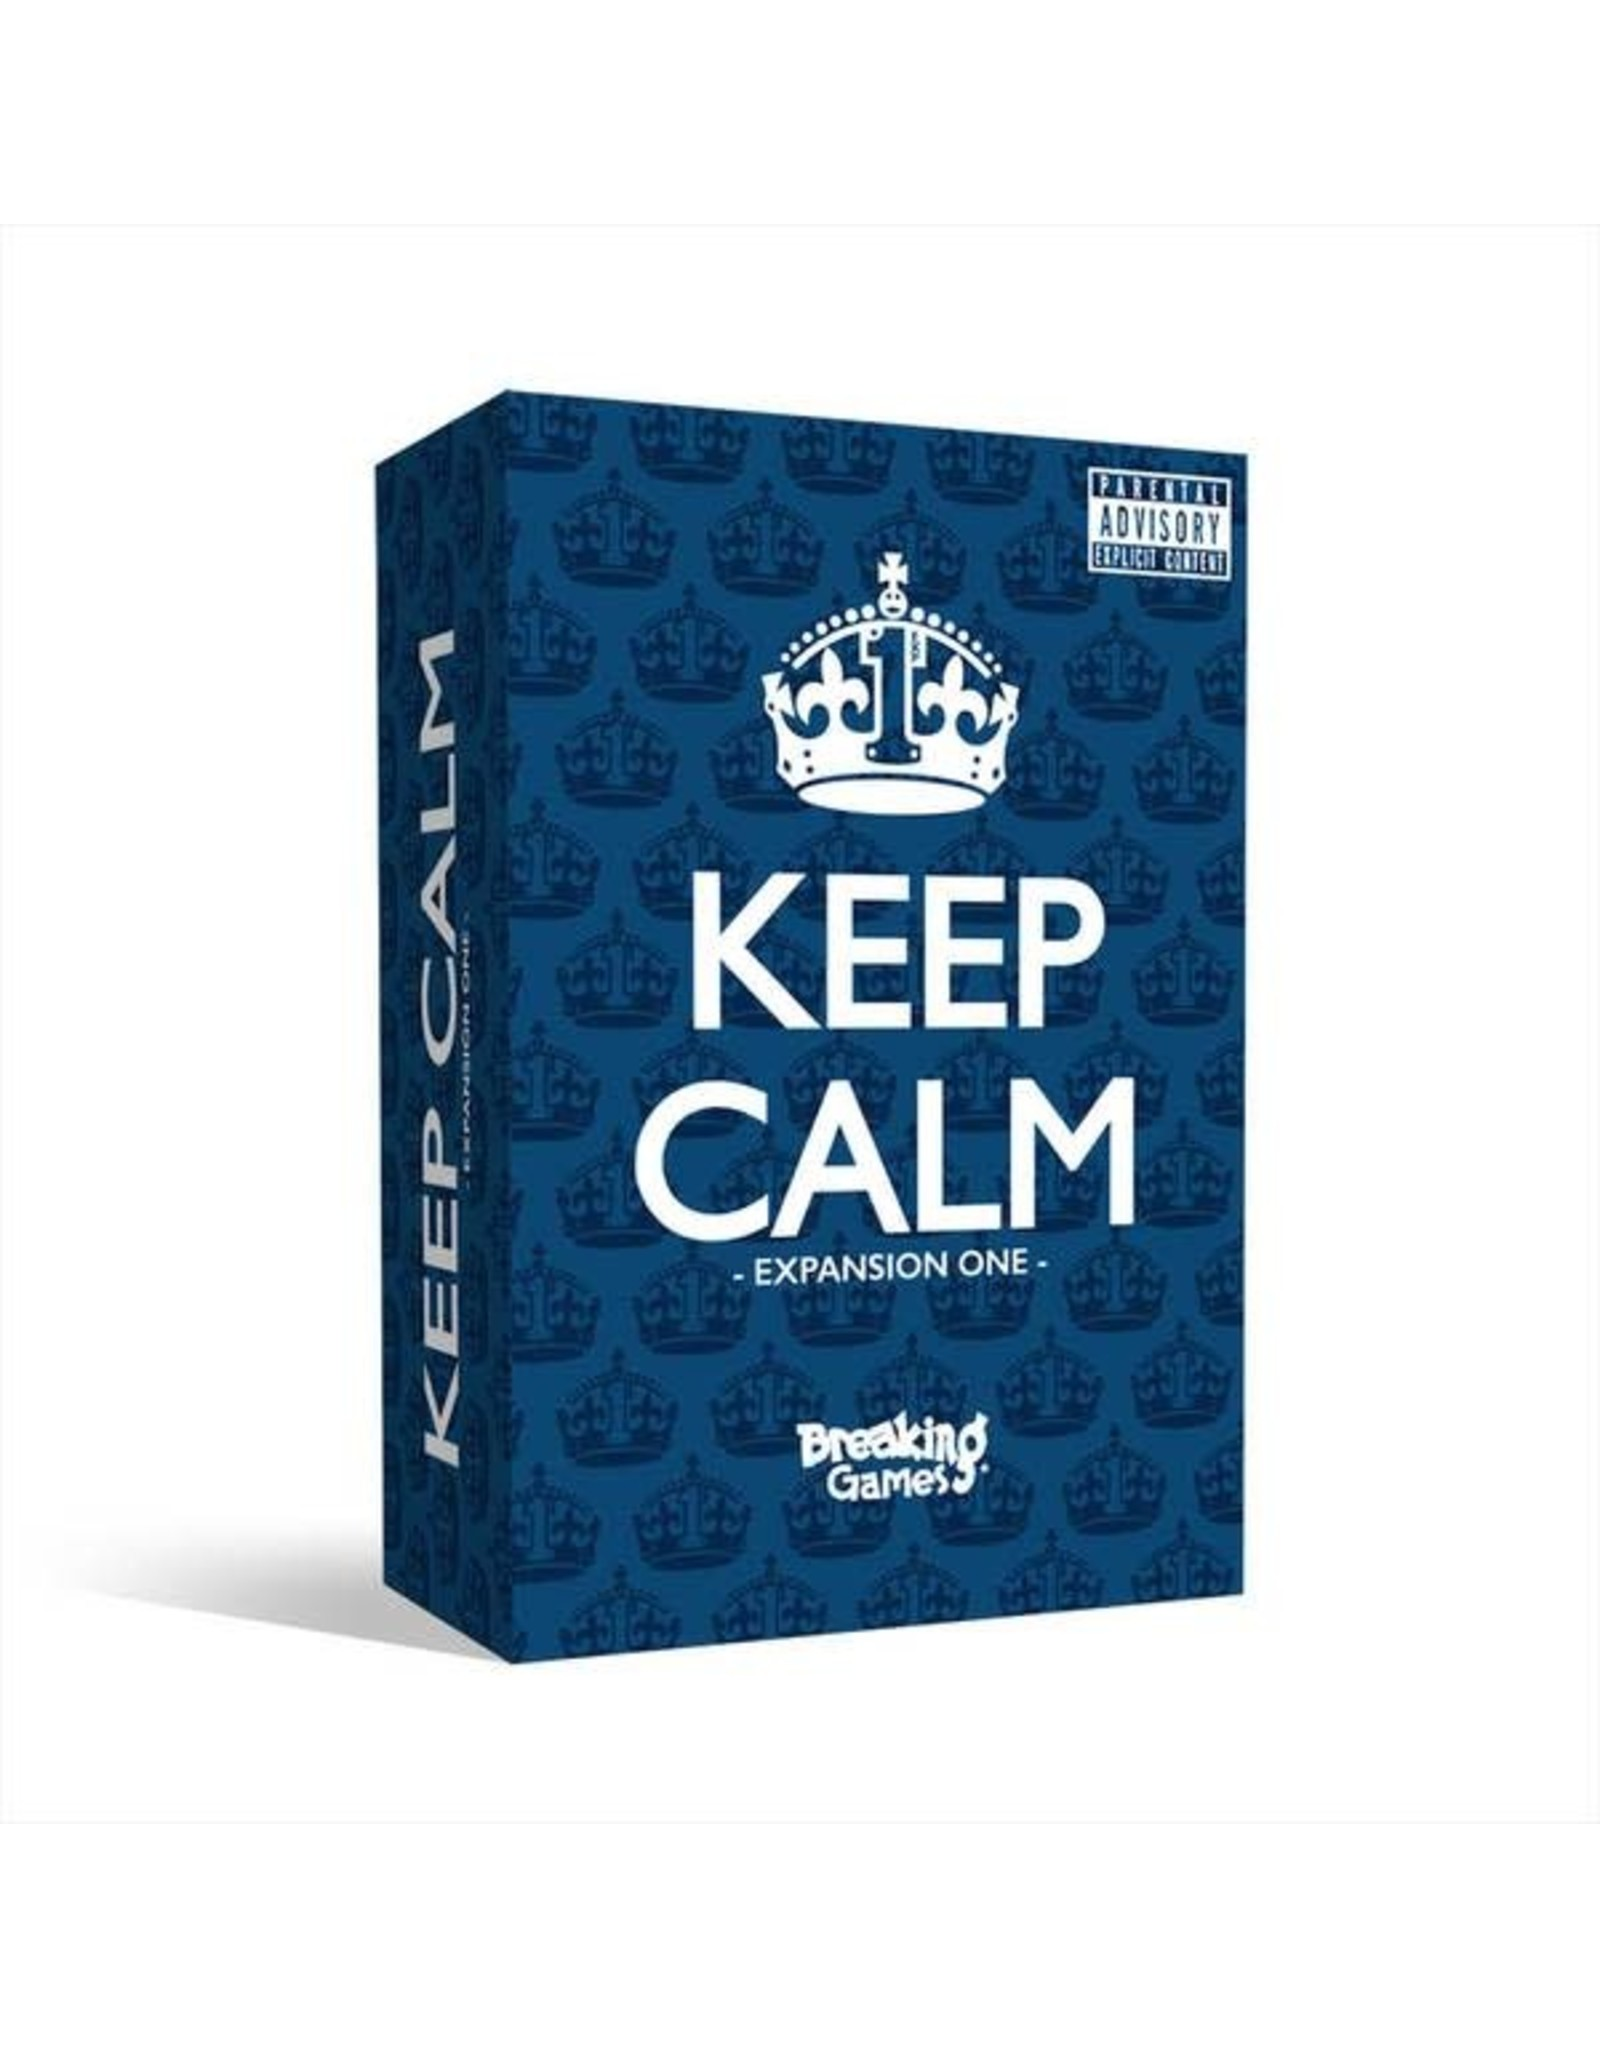 Breaking Games Keep Calm Expansion #1